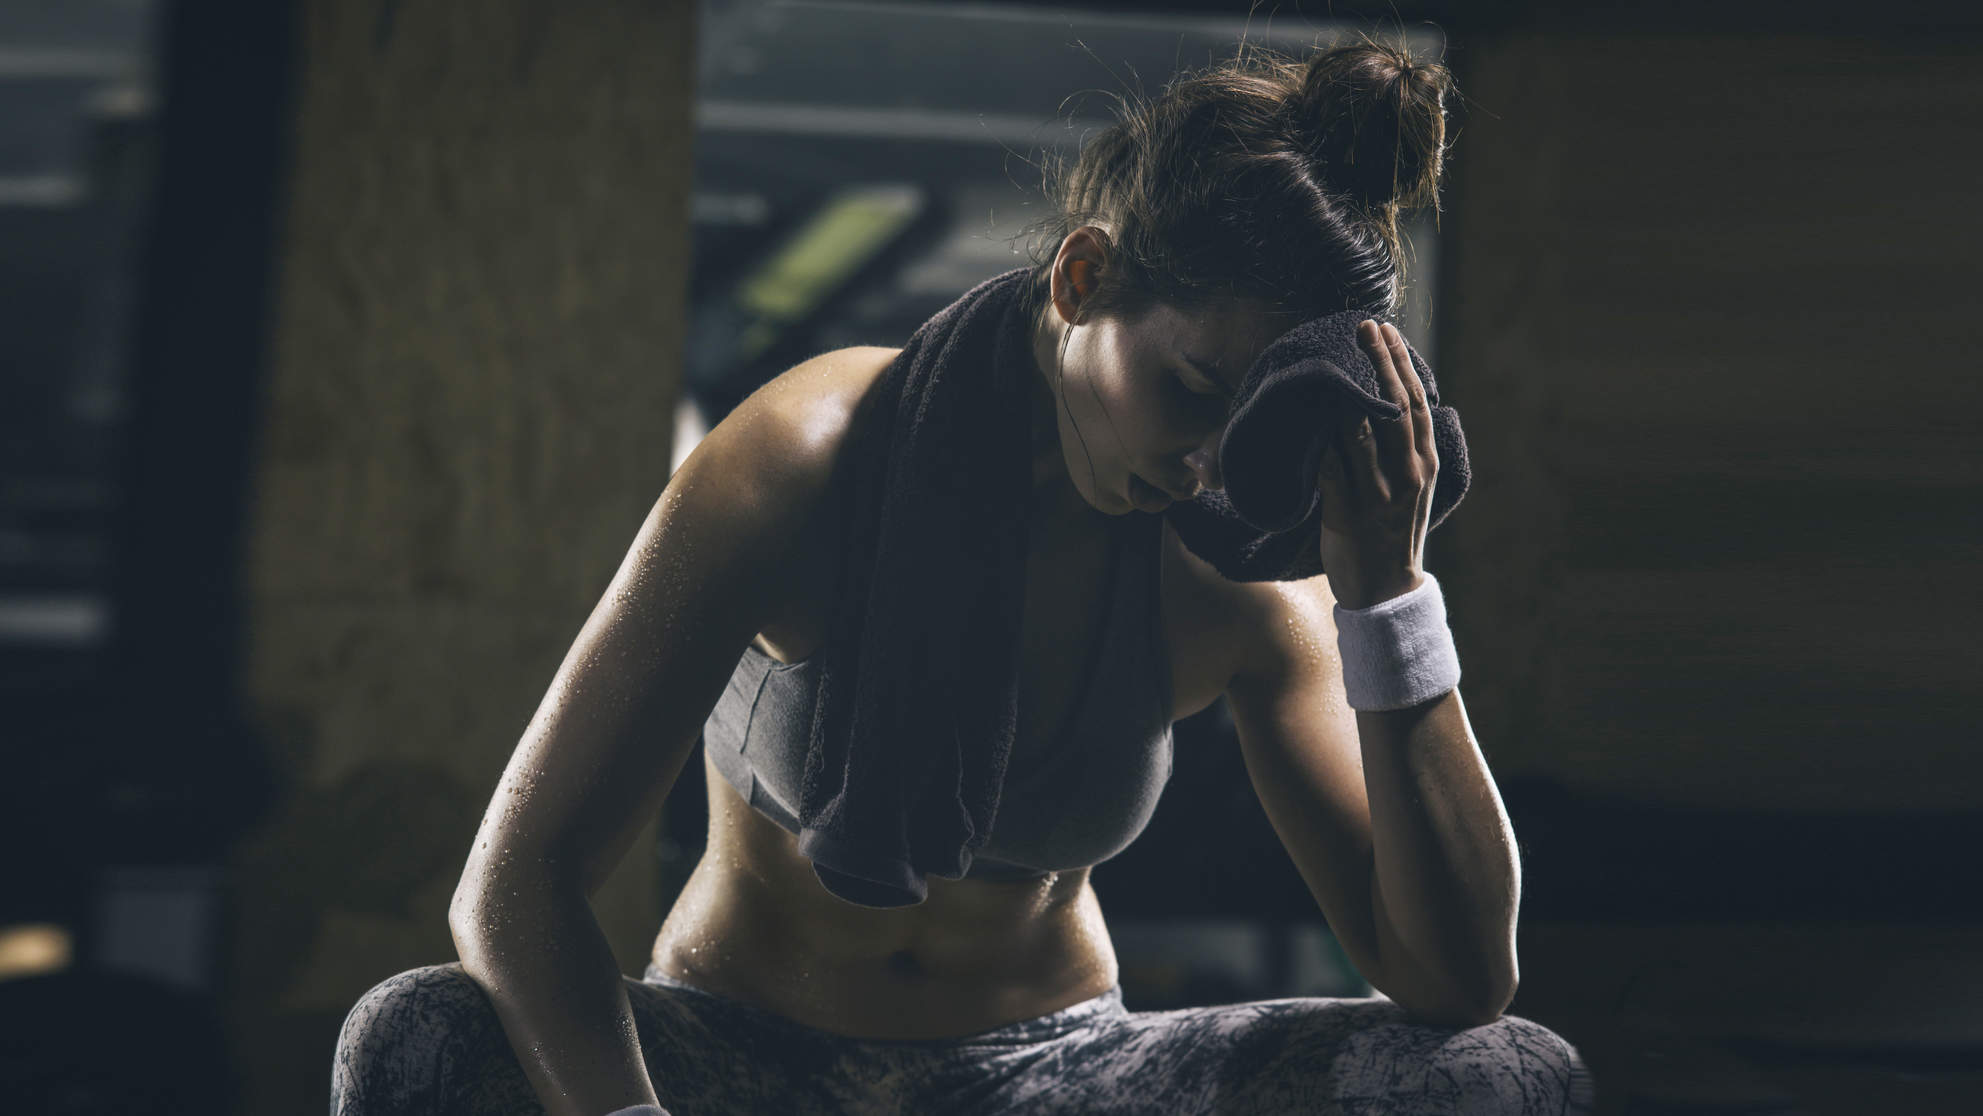 I Suffer Panic Attacks at the Gym—Here's What Helps Me Get Past the Anxiety